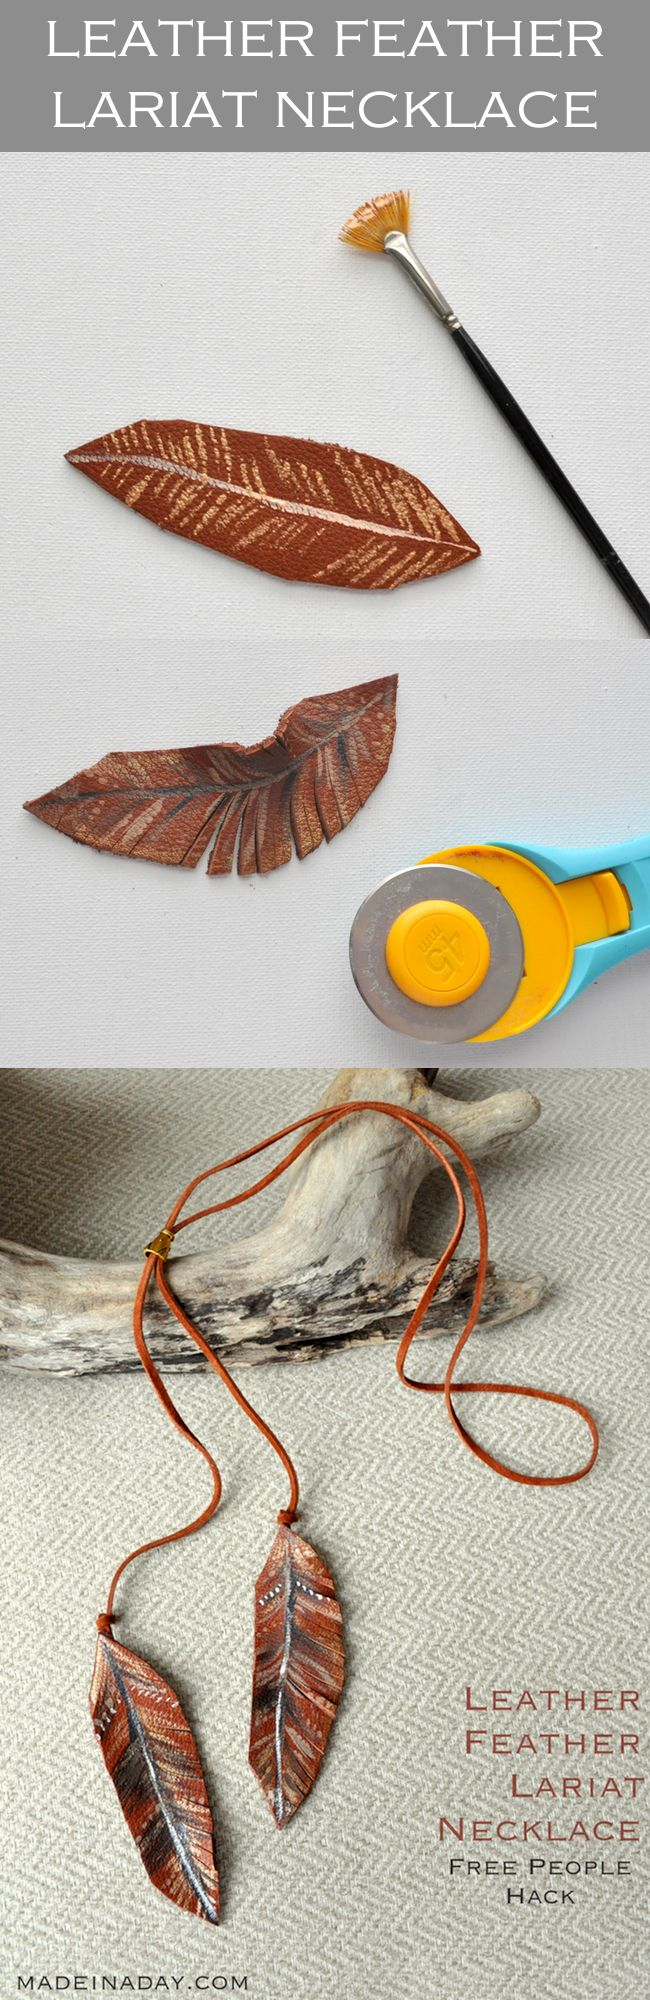 DIY Leather Feather Lariat Necklace + Free Printable Guide